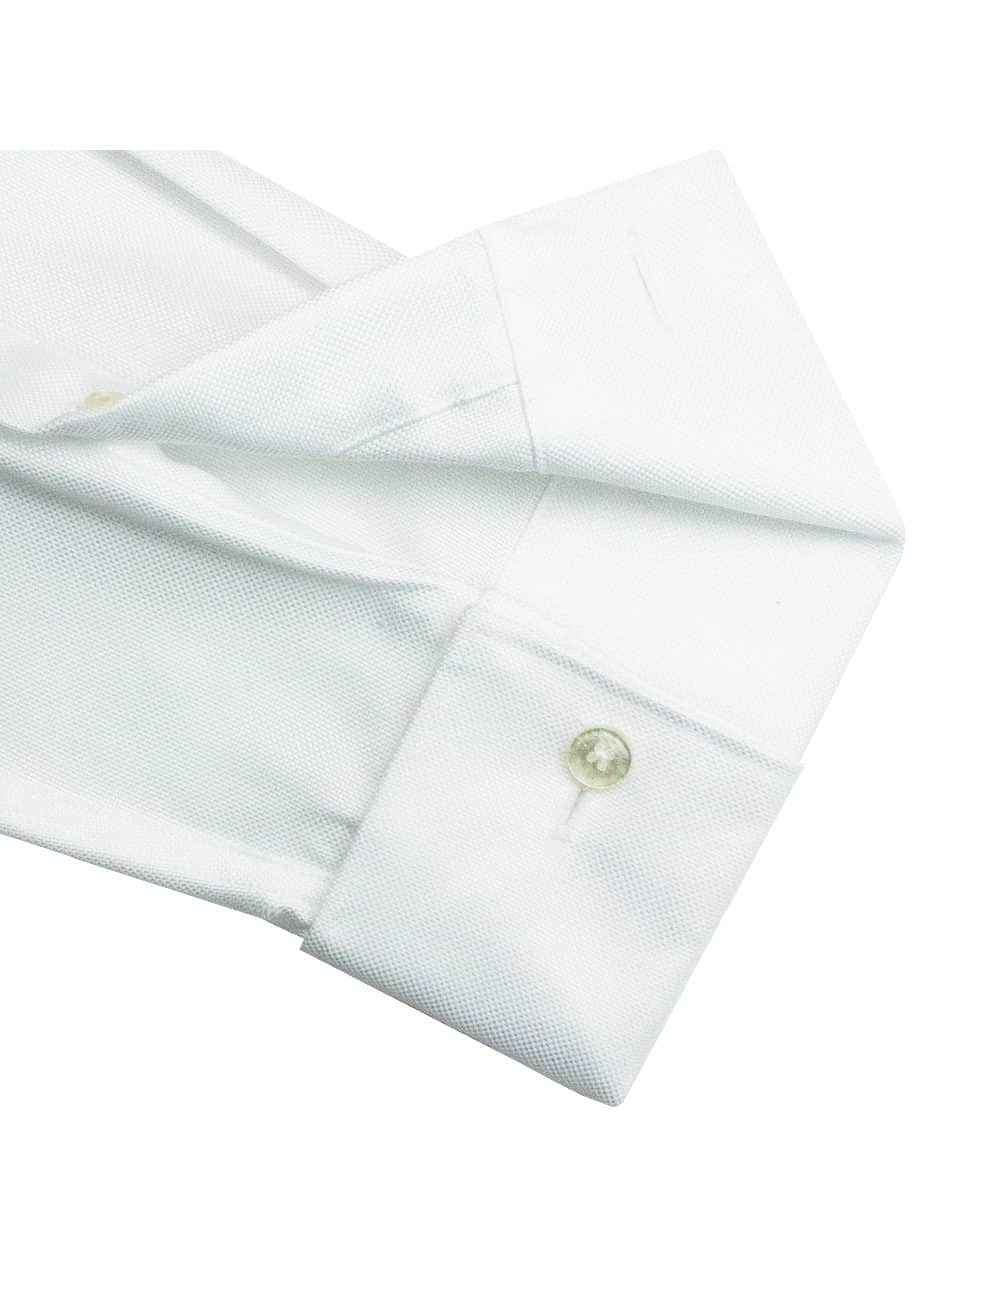 Modern Fit Double Ply Non-iron 100% Premium Cotton Solid White Long Sleeve Double Cuff Shirt with Long Lasting White Finishing MF2D2.NOS